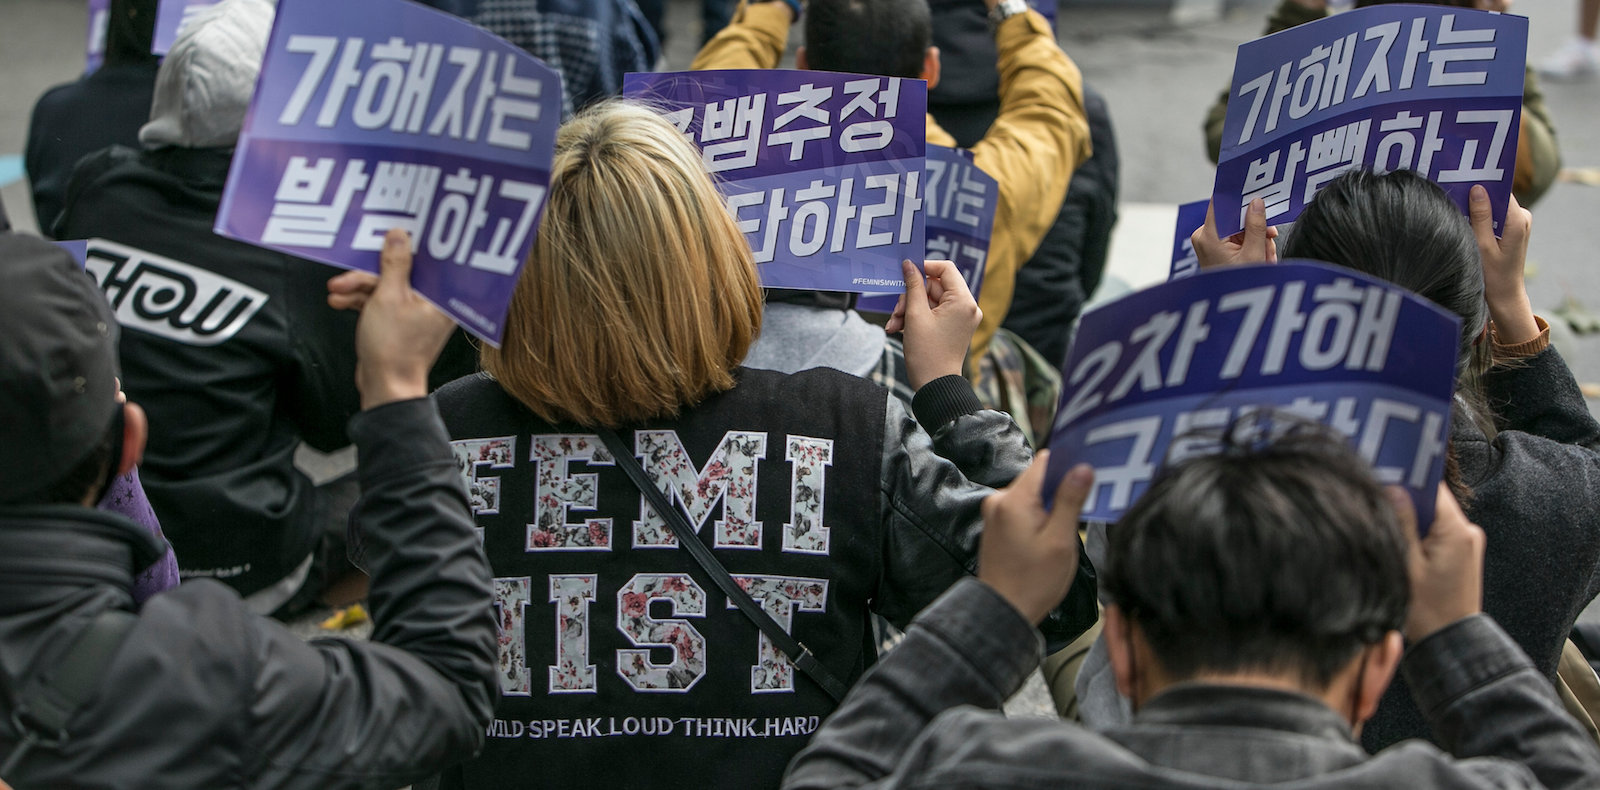 Women's rights protest in South Korea. (Photo: Jean Chung via Getty)